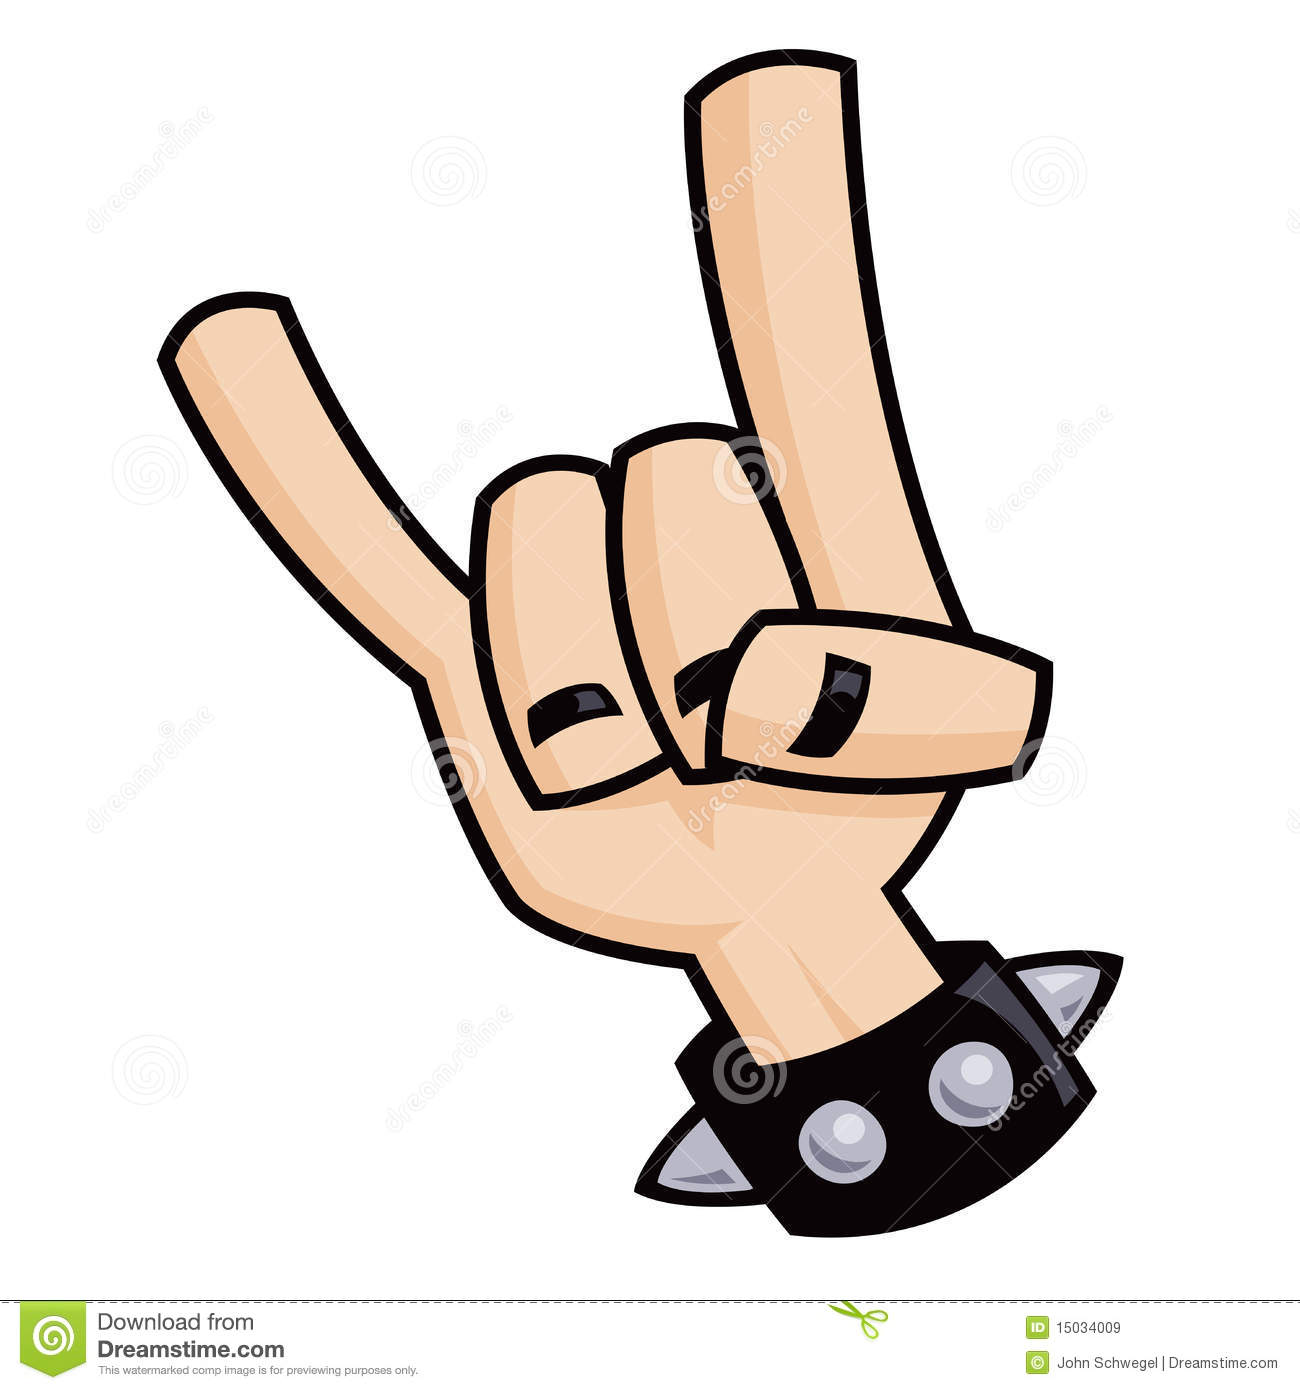 [Image: heavy-metal-devil-horns-hand-sign-15034009.jpg]